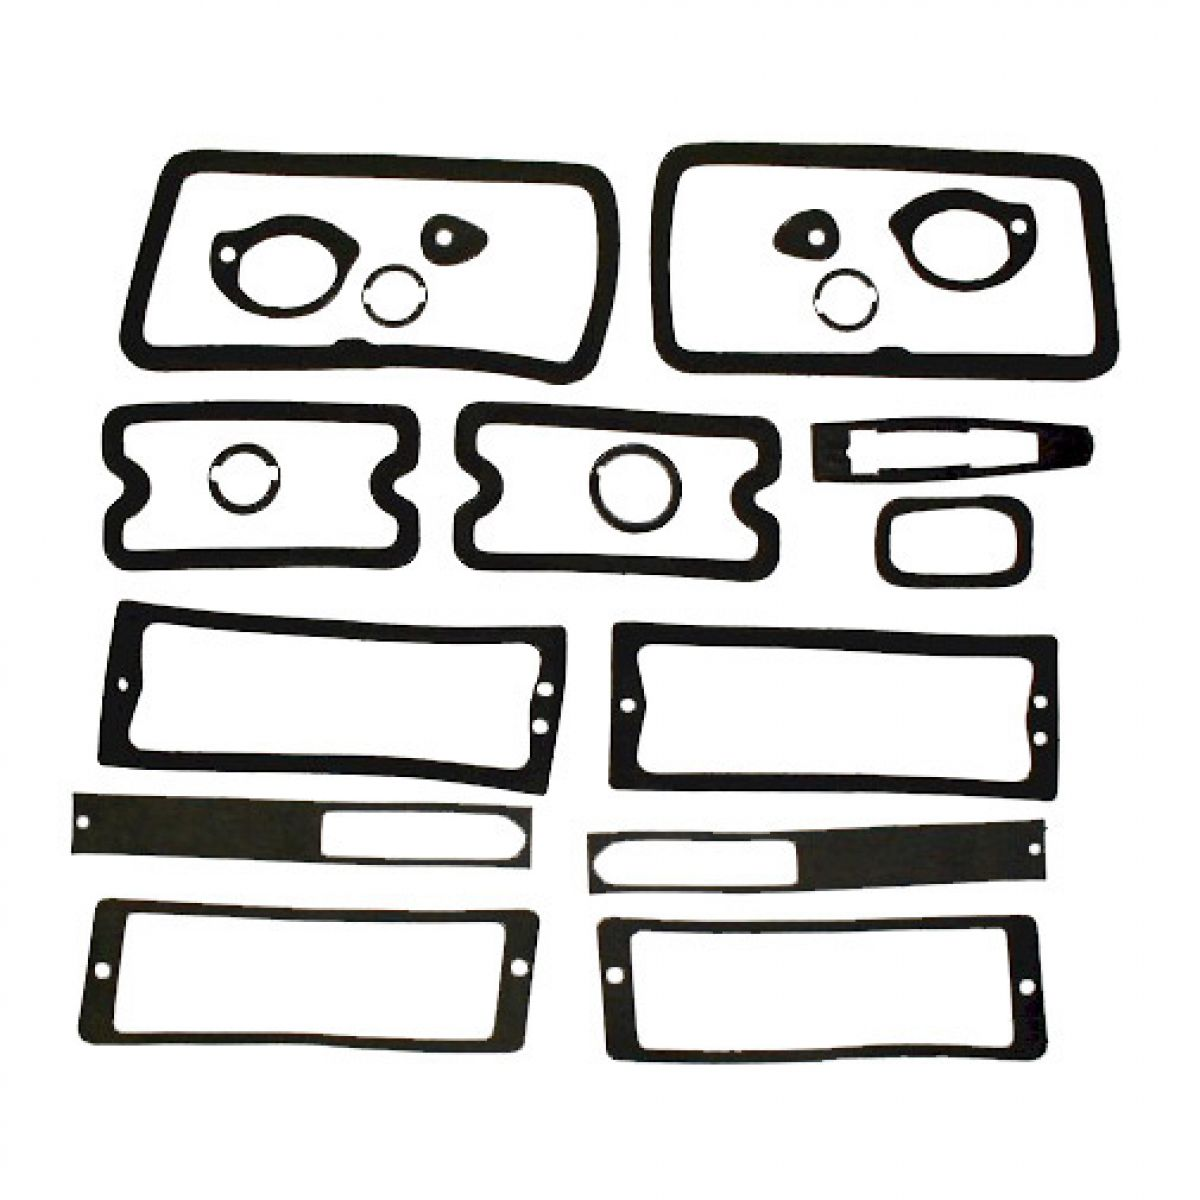 Exterior Body Paint Gasket Set Kit For 70 Chevy Chevelle